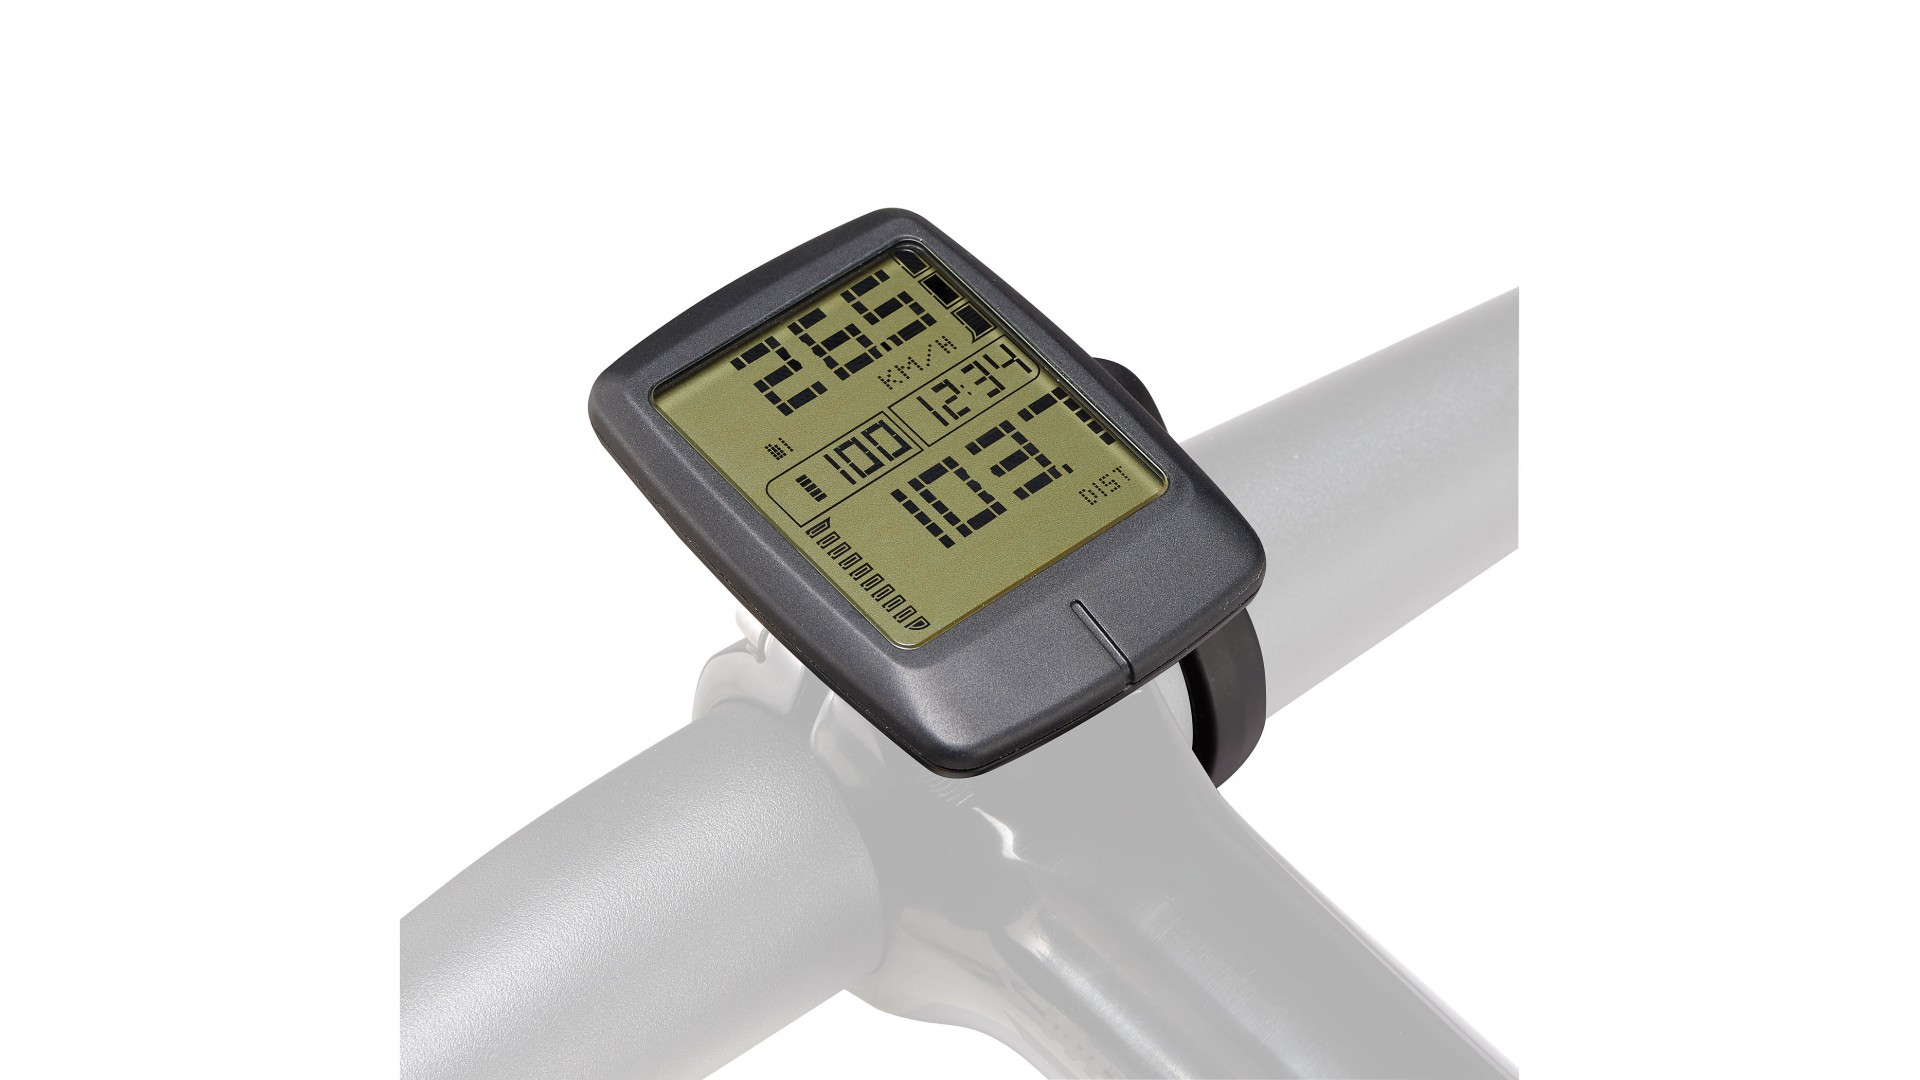 Turbo Connect Display Specialized Negro 1 IBKBike.es